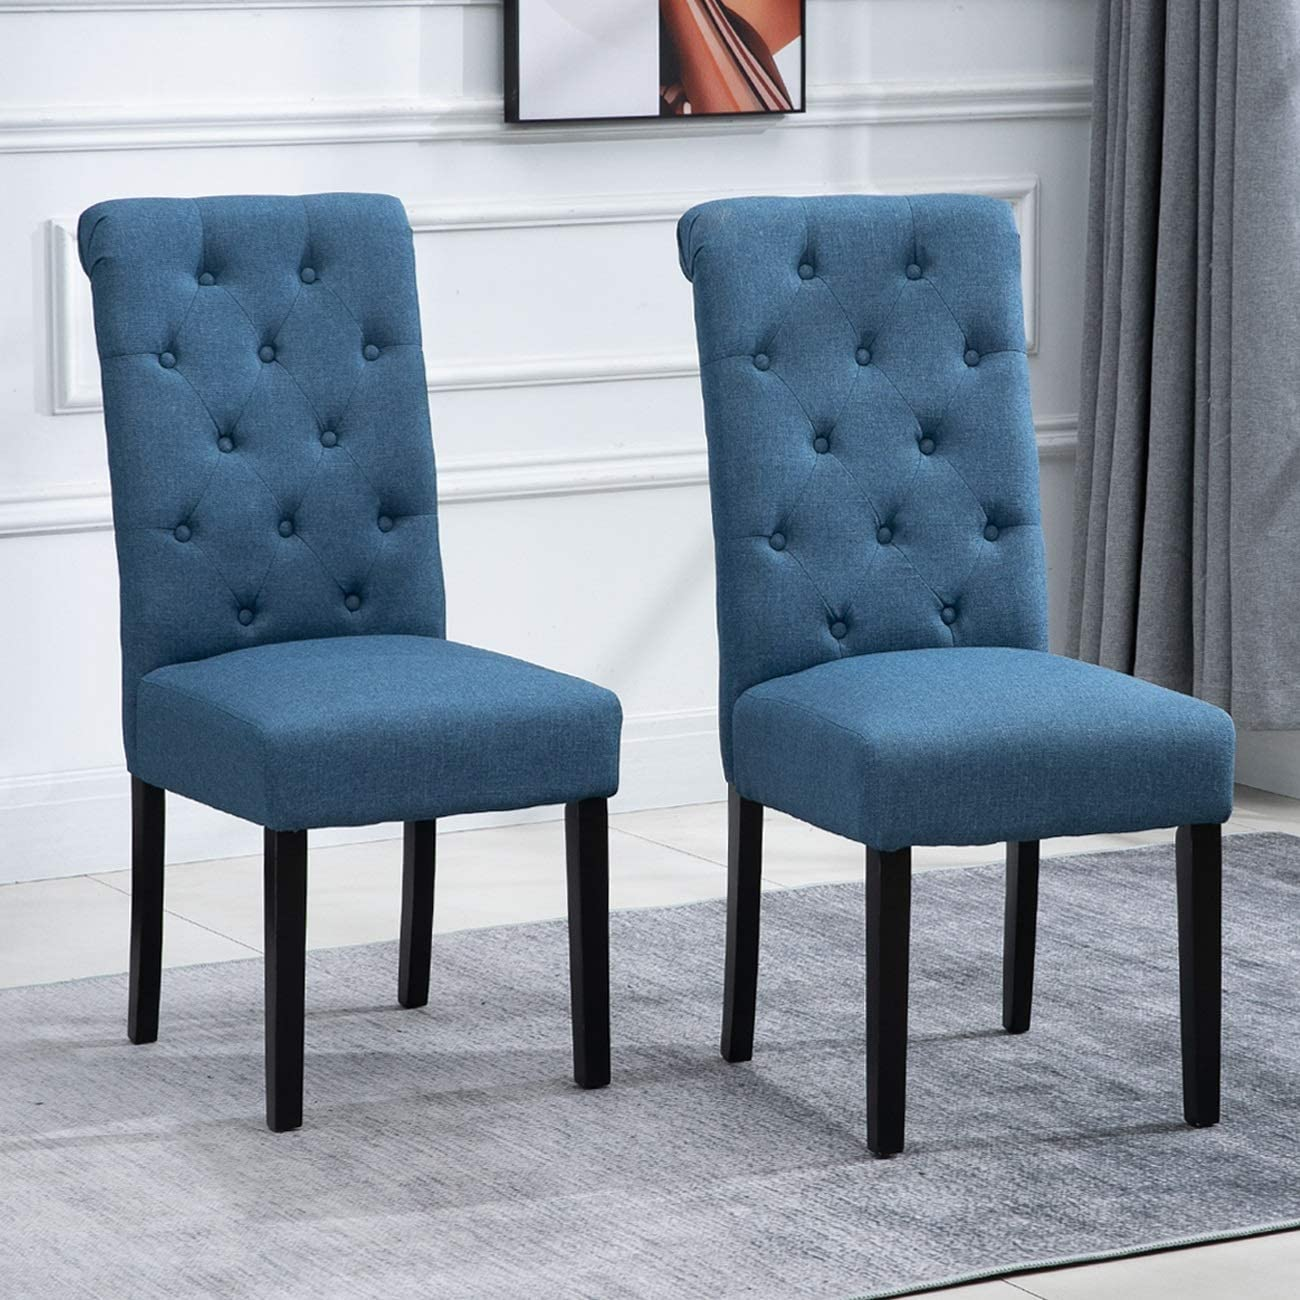 Amazon Com Nozama 2 Pack Upholstered Dining Chairs Set Of 2 Tufted Parsons Chairs With Solid Wood Legs High Back Kitchen Dining Room Chairs Blue Chairs